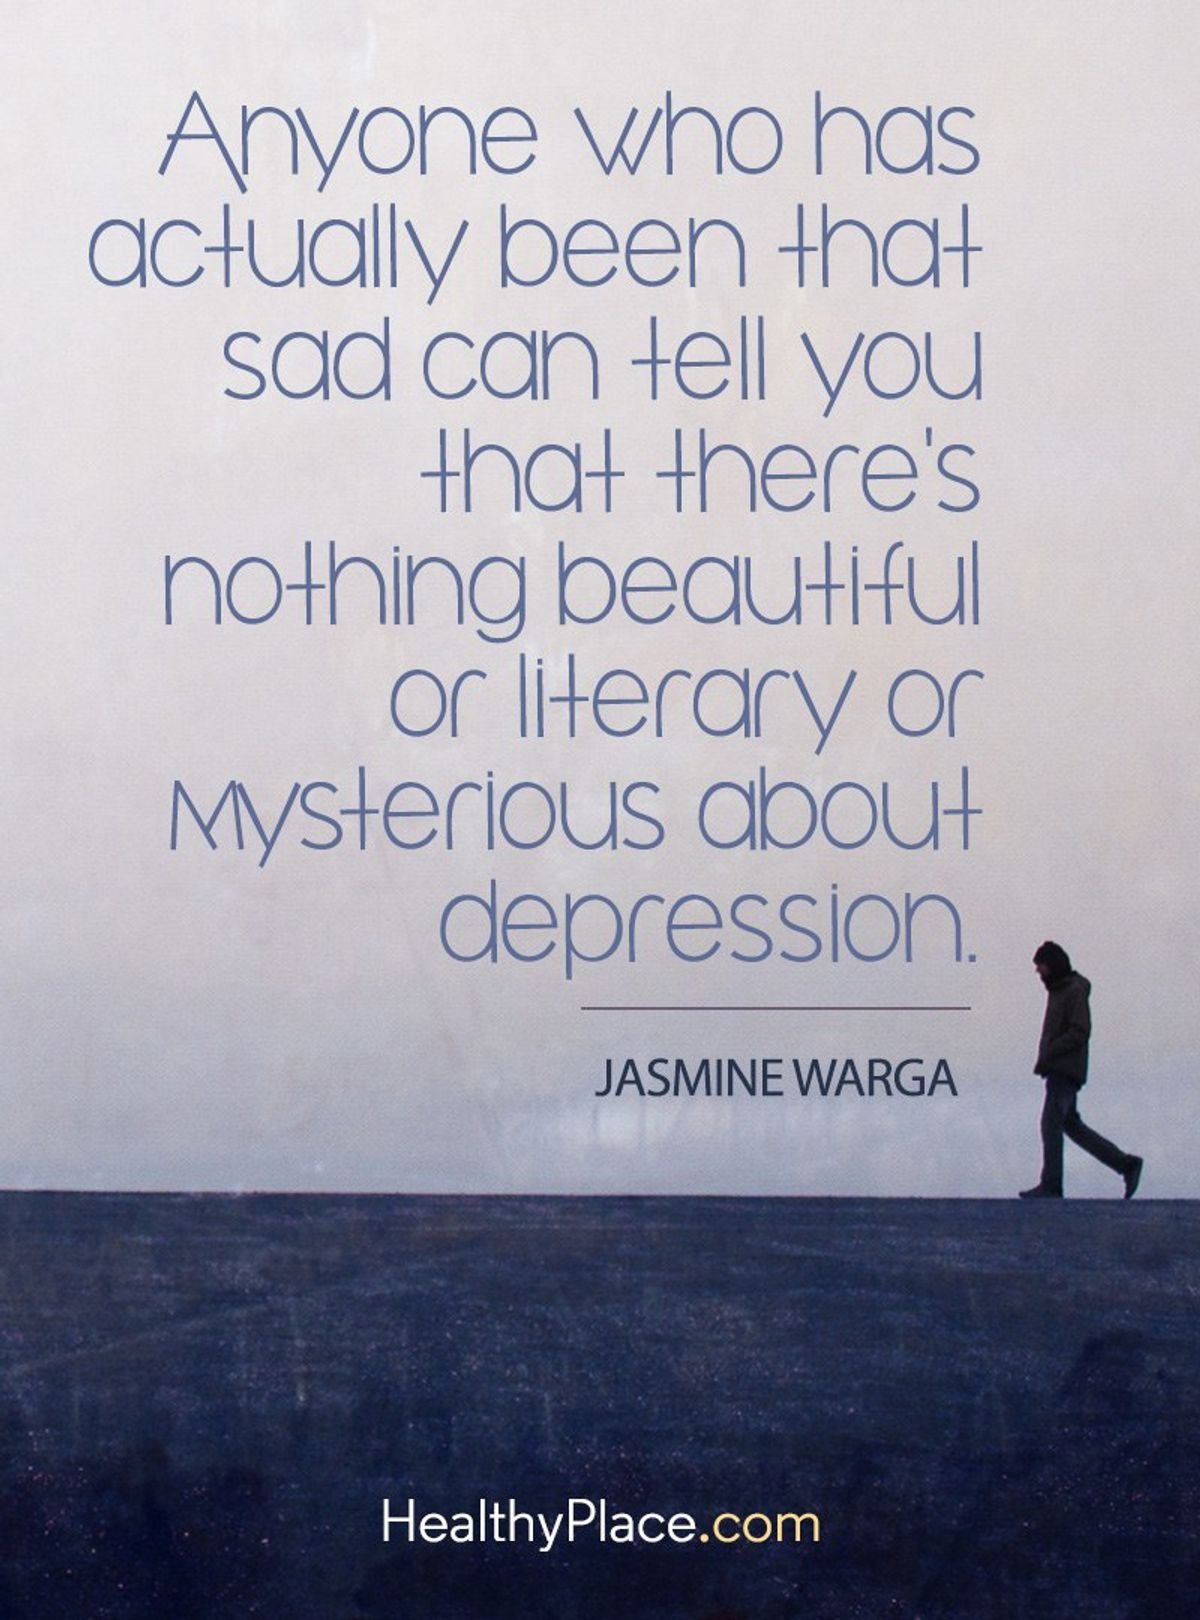 Depression makes you feel numb, Anxiety makes you feel scared